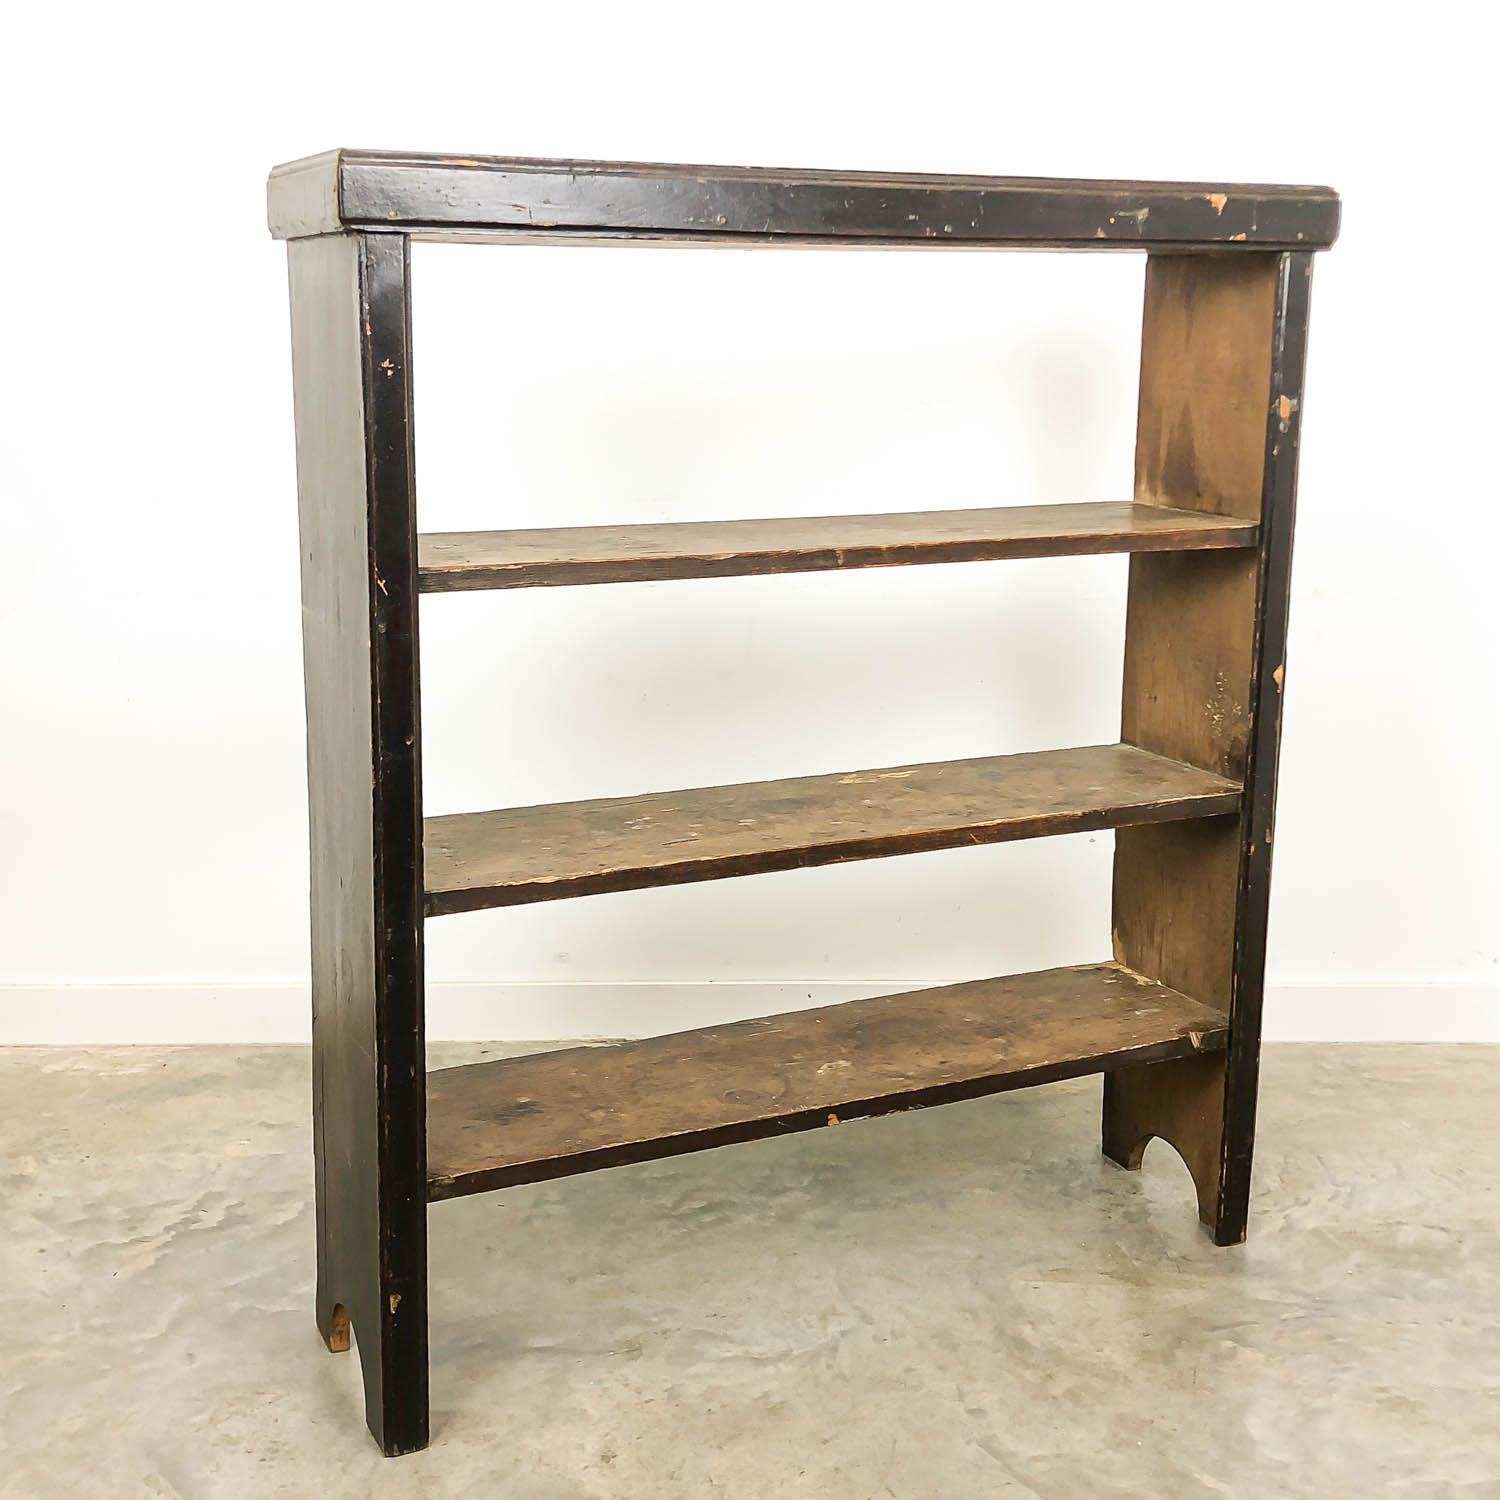 French antique brocant shelf